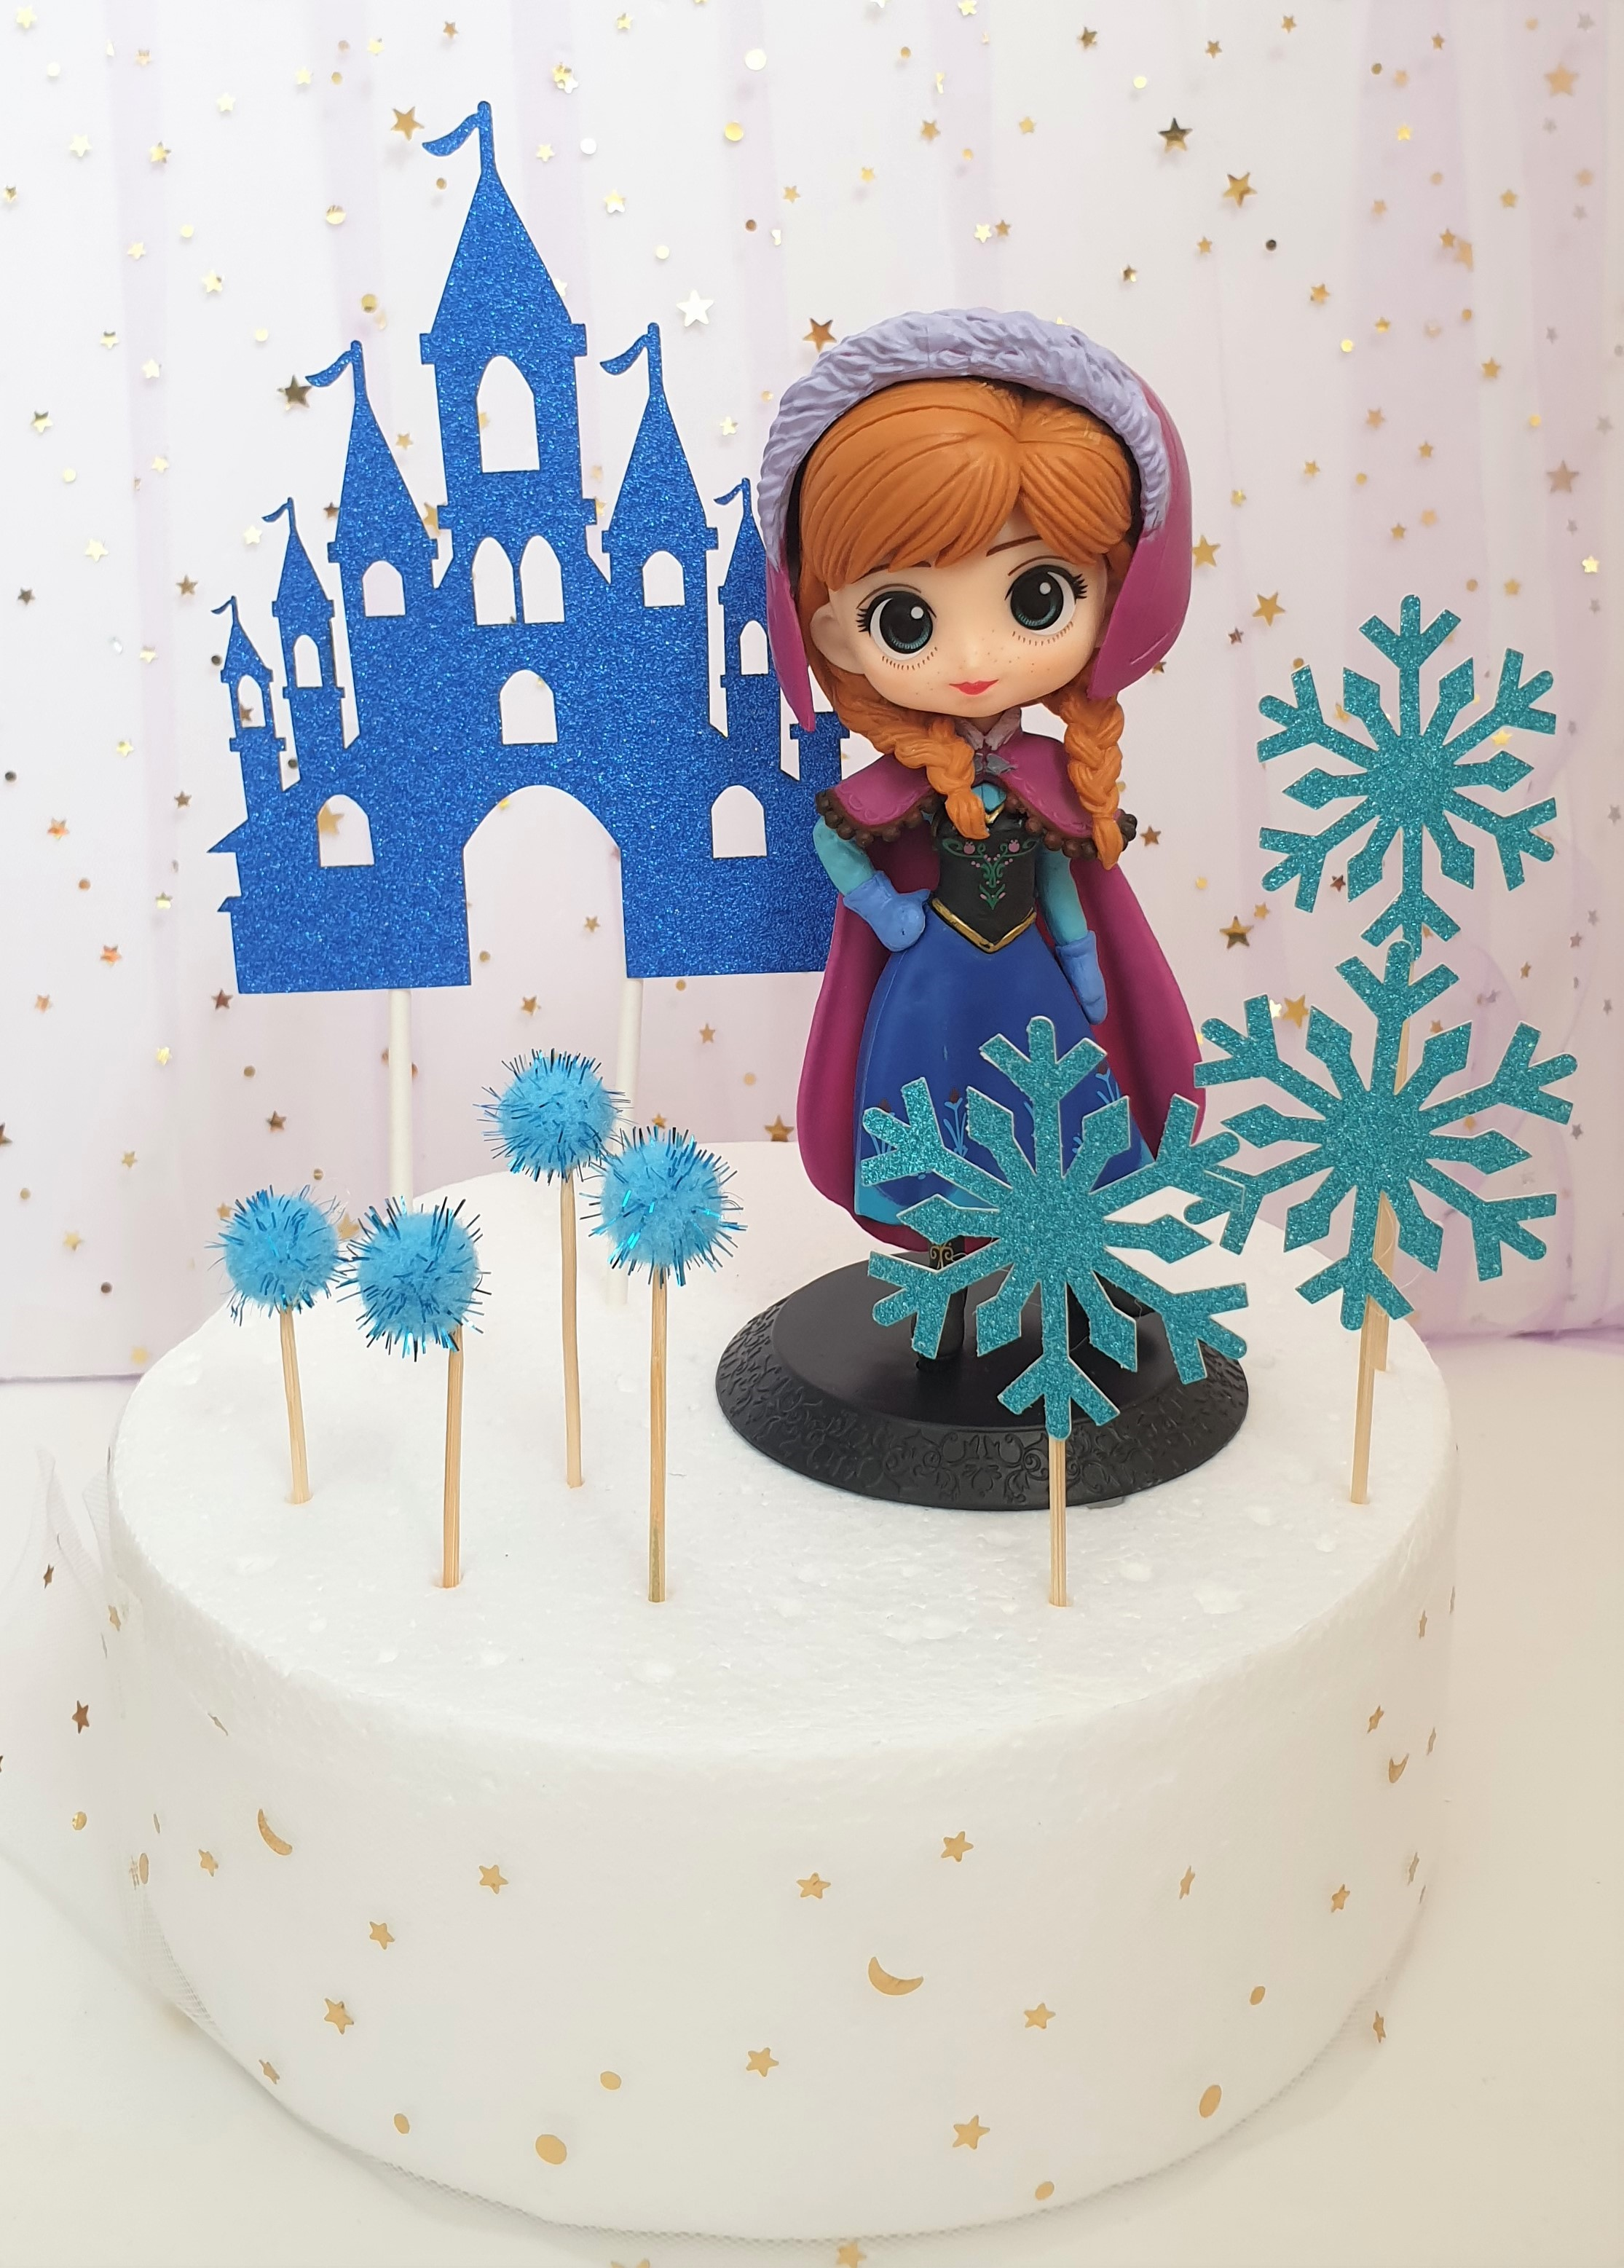 Enjoyable Princess Cake Princess Anna Figurine With Snowflakes And Castle Funny Birthday Cards Online Inifofree Goldxyz